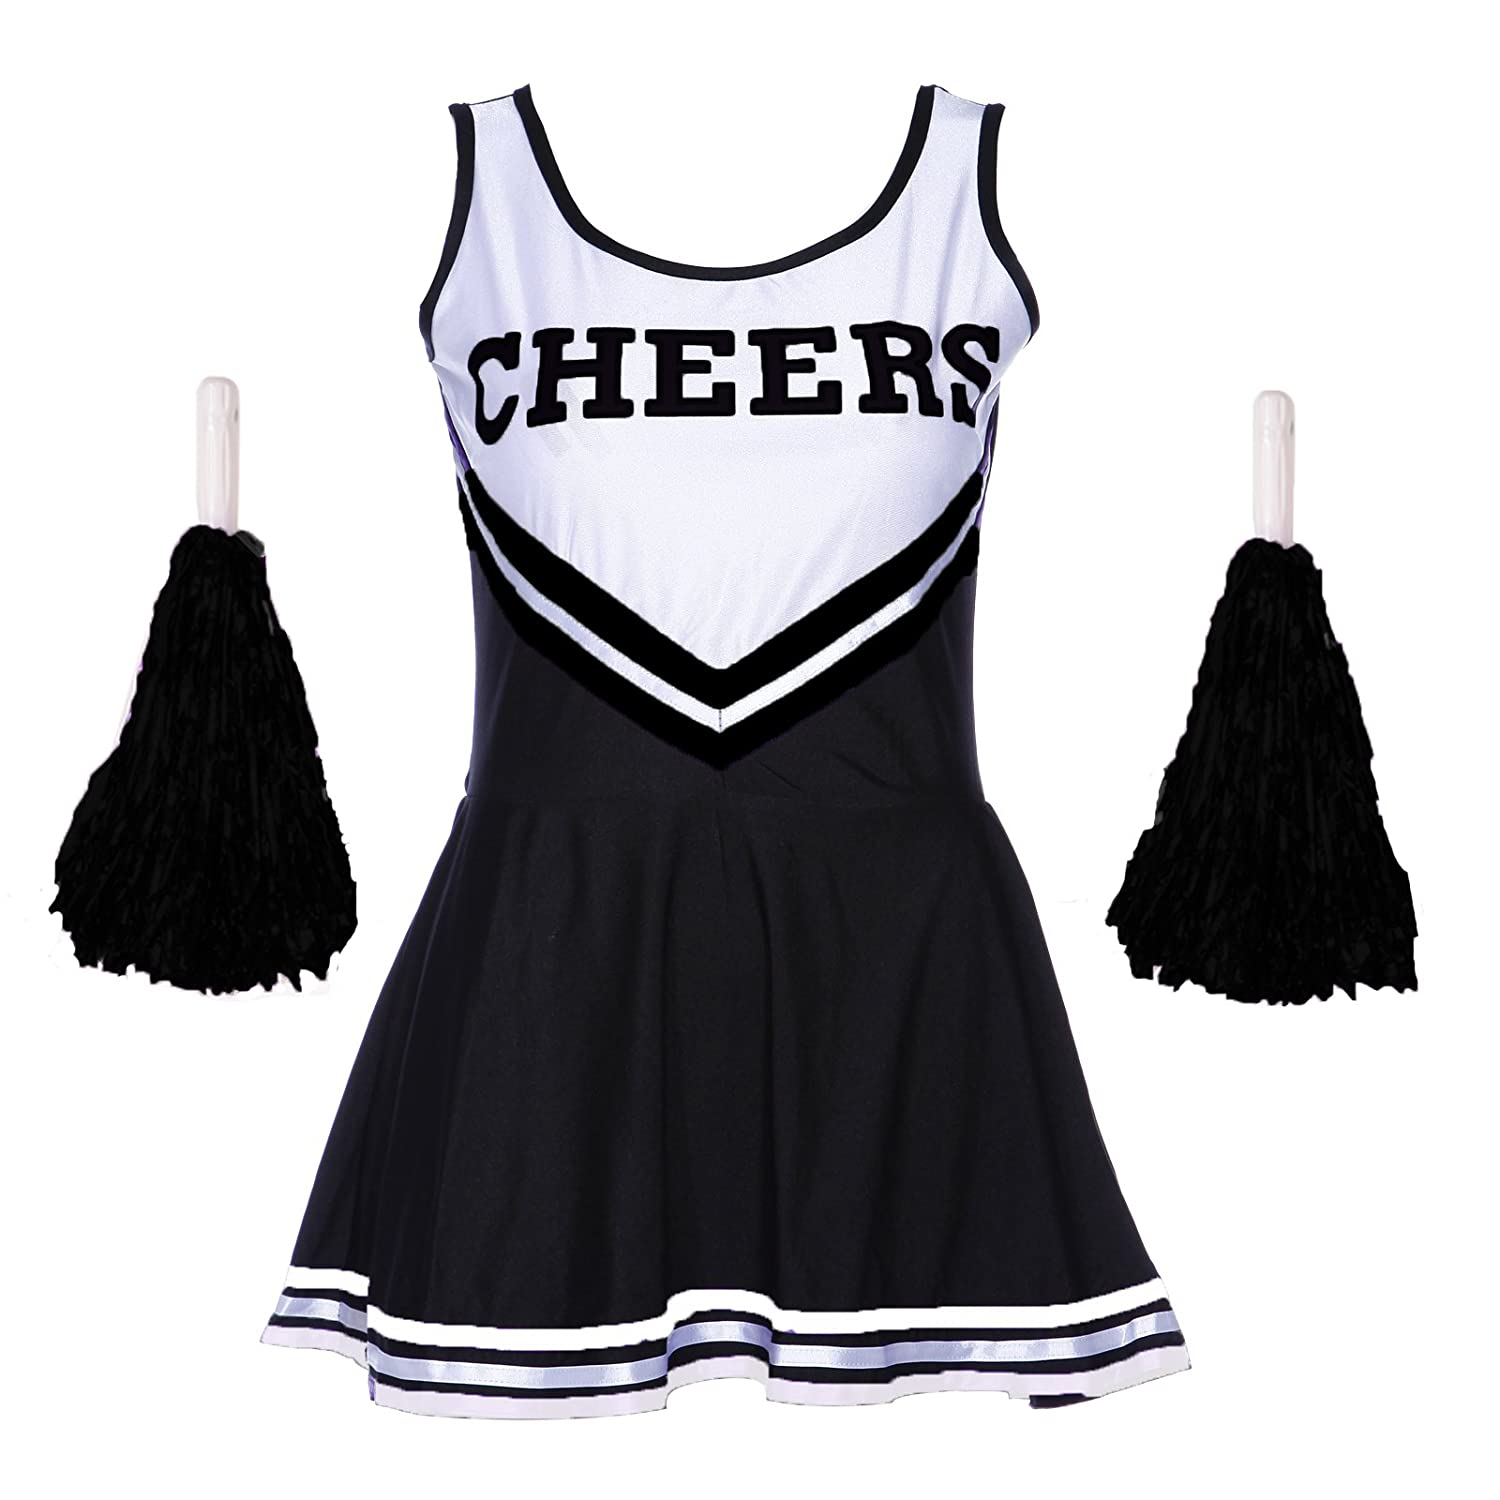 Ladies REDSTAR Cheerleader Costume Outfit With Pom Poms - Fancy Dress Costume Sports High School Halloween - 6 Colours / Size 6-16 Wickd